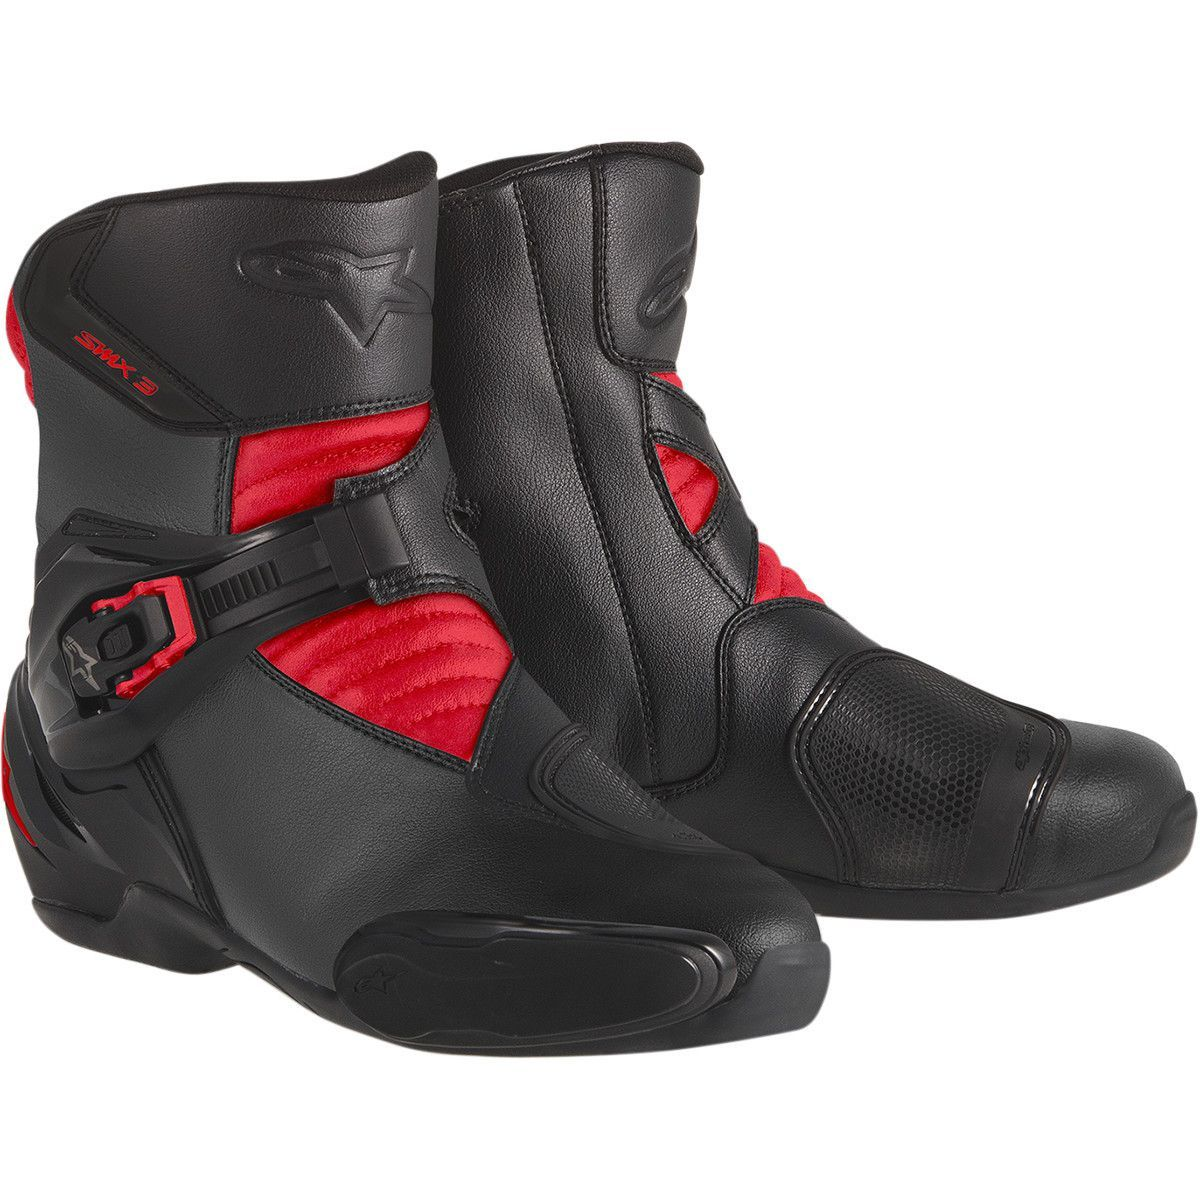 Alpinestars Smx 3 Boots Mens Motorcycle Boots Motorcycle Riding Boots Boots